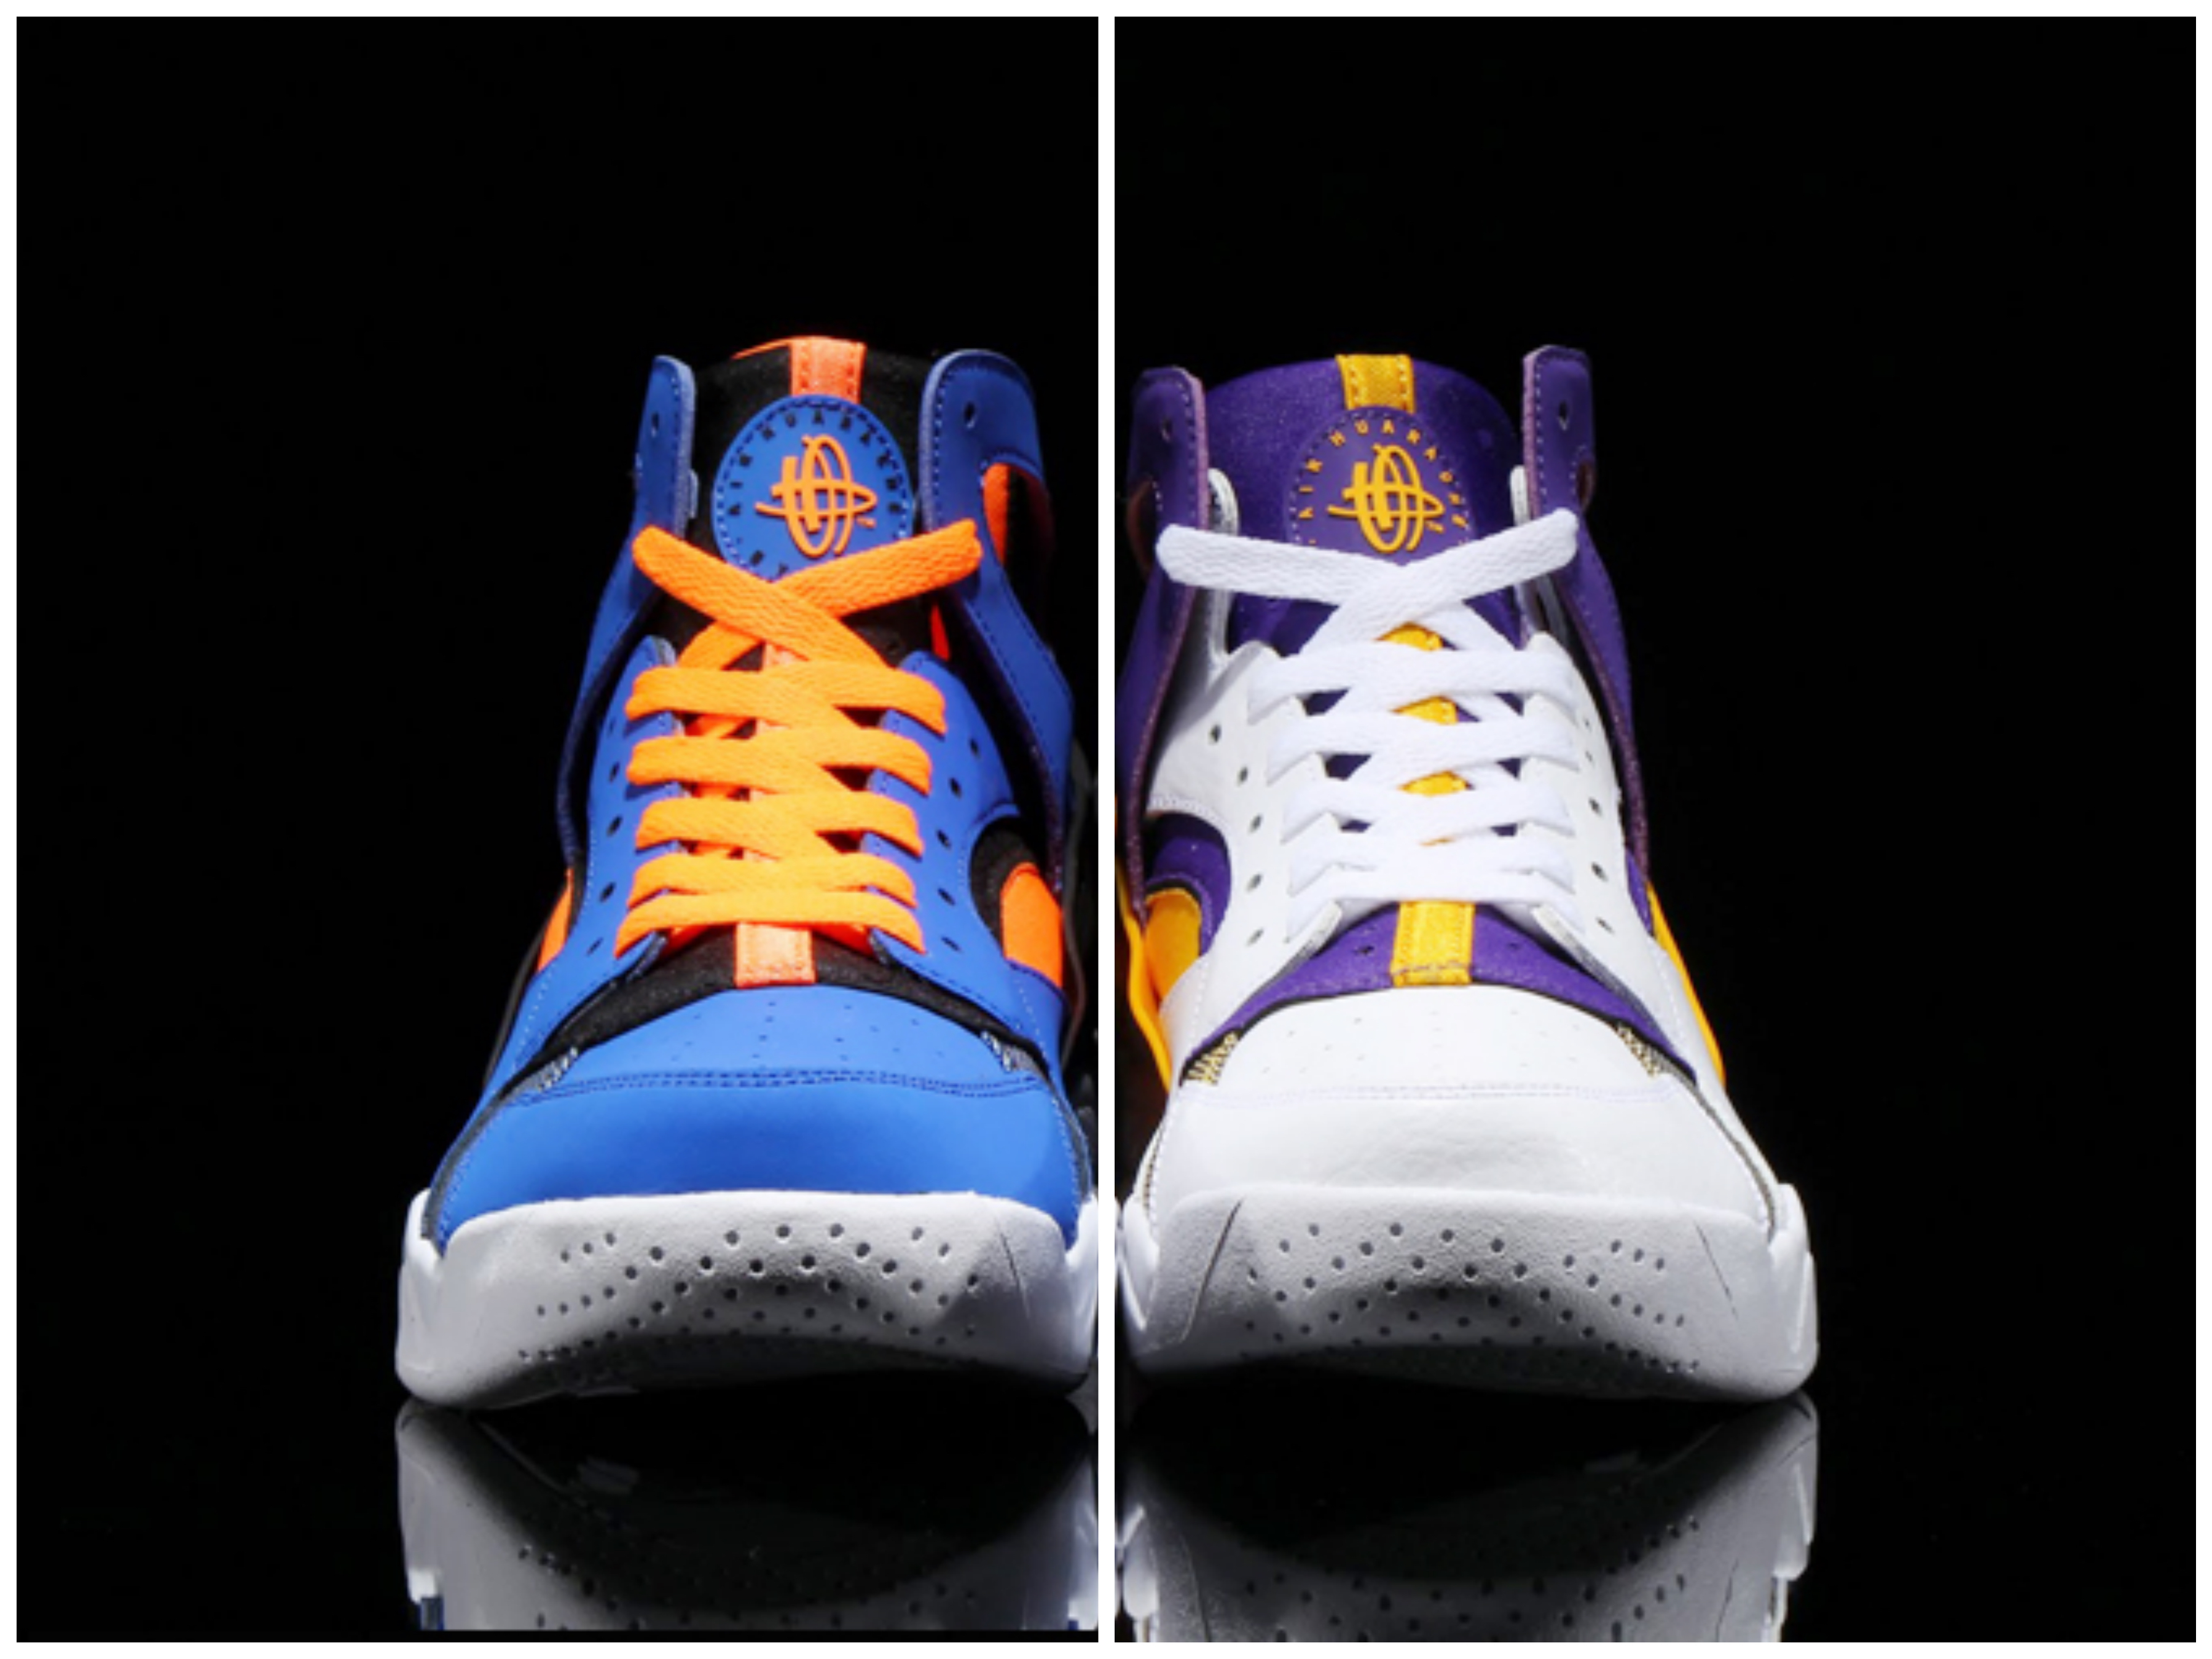 2daea7fcd16 A Nike Air Flight Huarache Pack for Lakers   Knicks fans - WearTesters